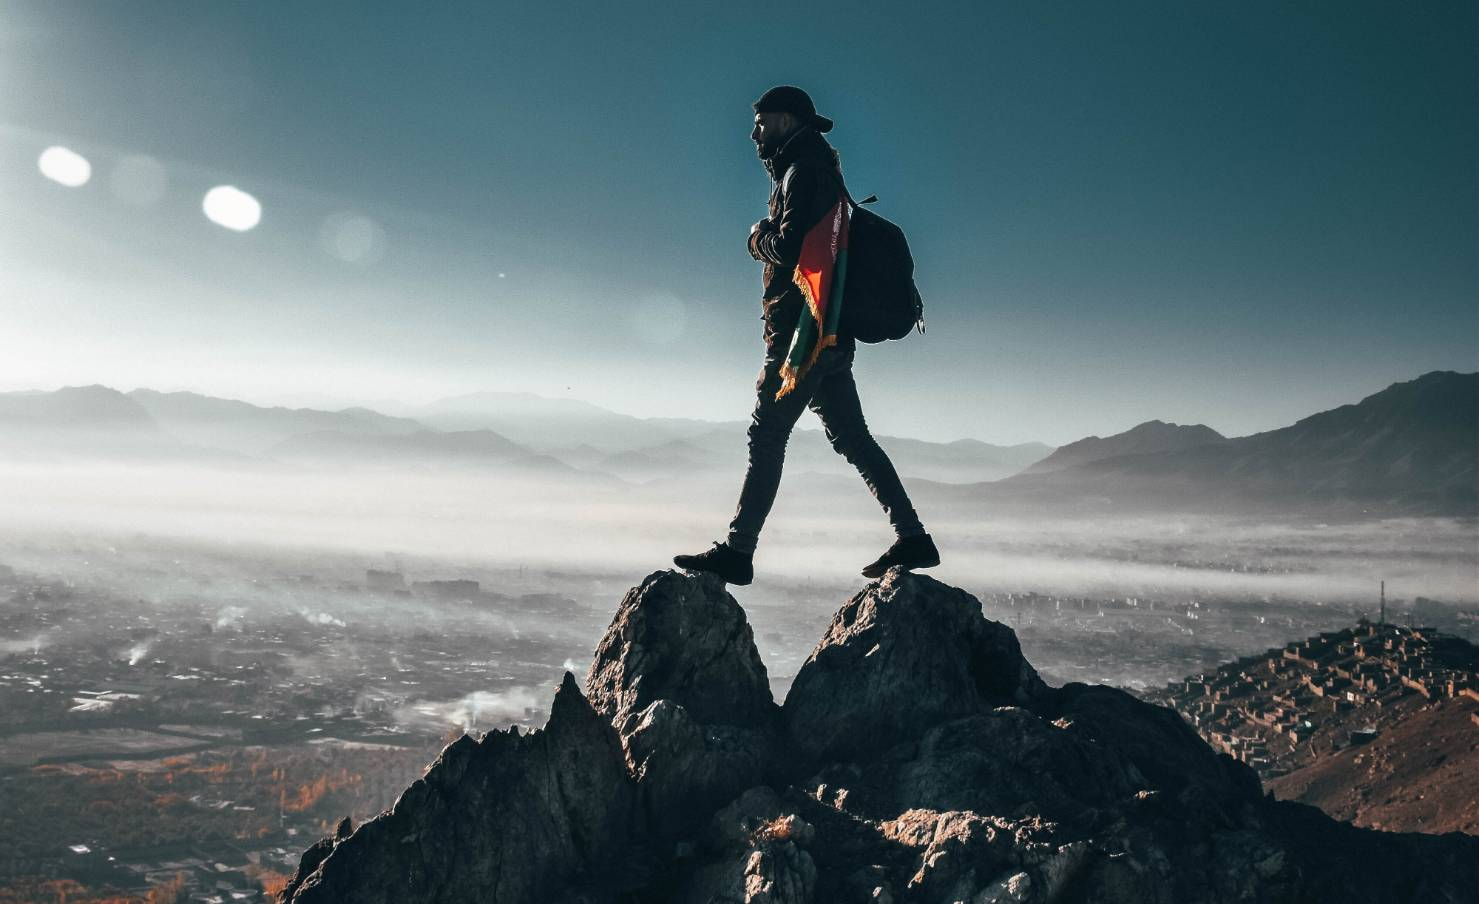 person-standing-on-top-of-rock-1576937 (1)